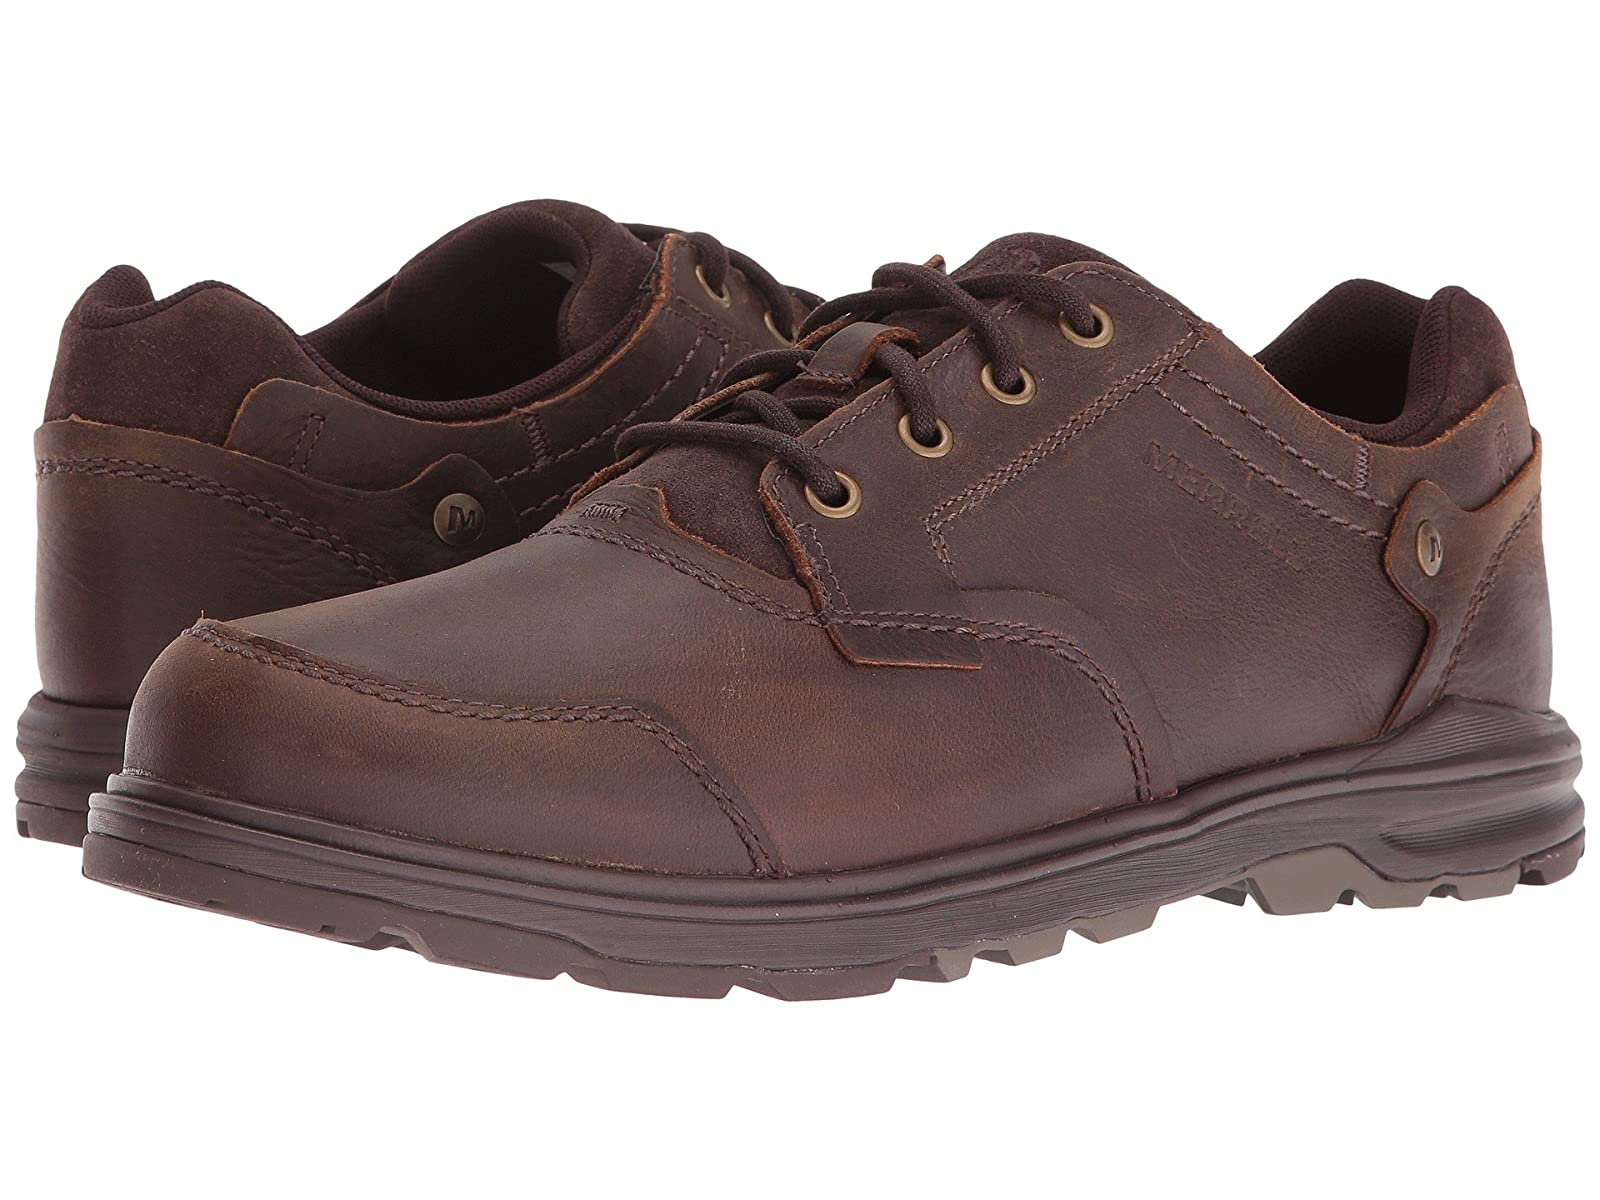 Merrell Brevard OxfordCheap and distinctive eye-catching shoes